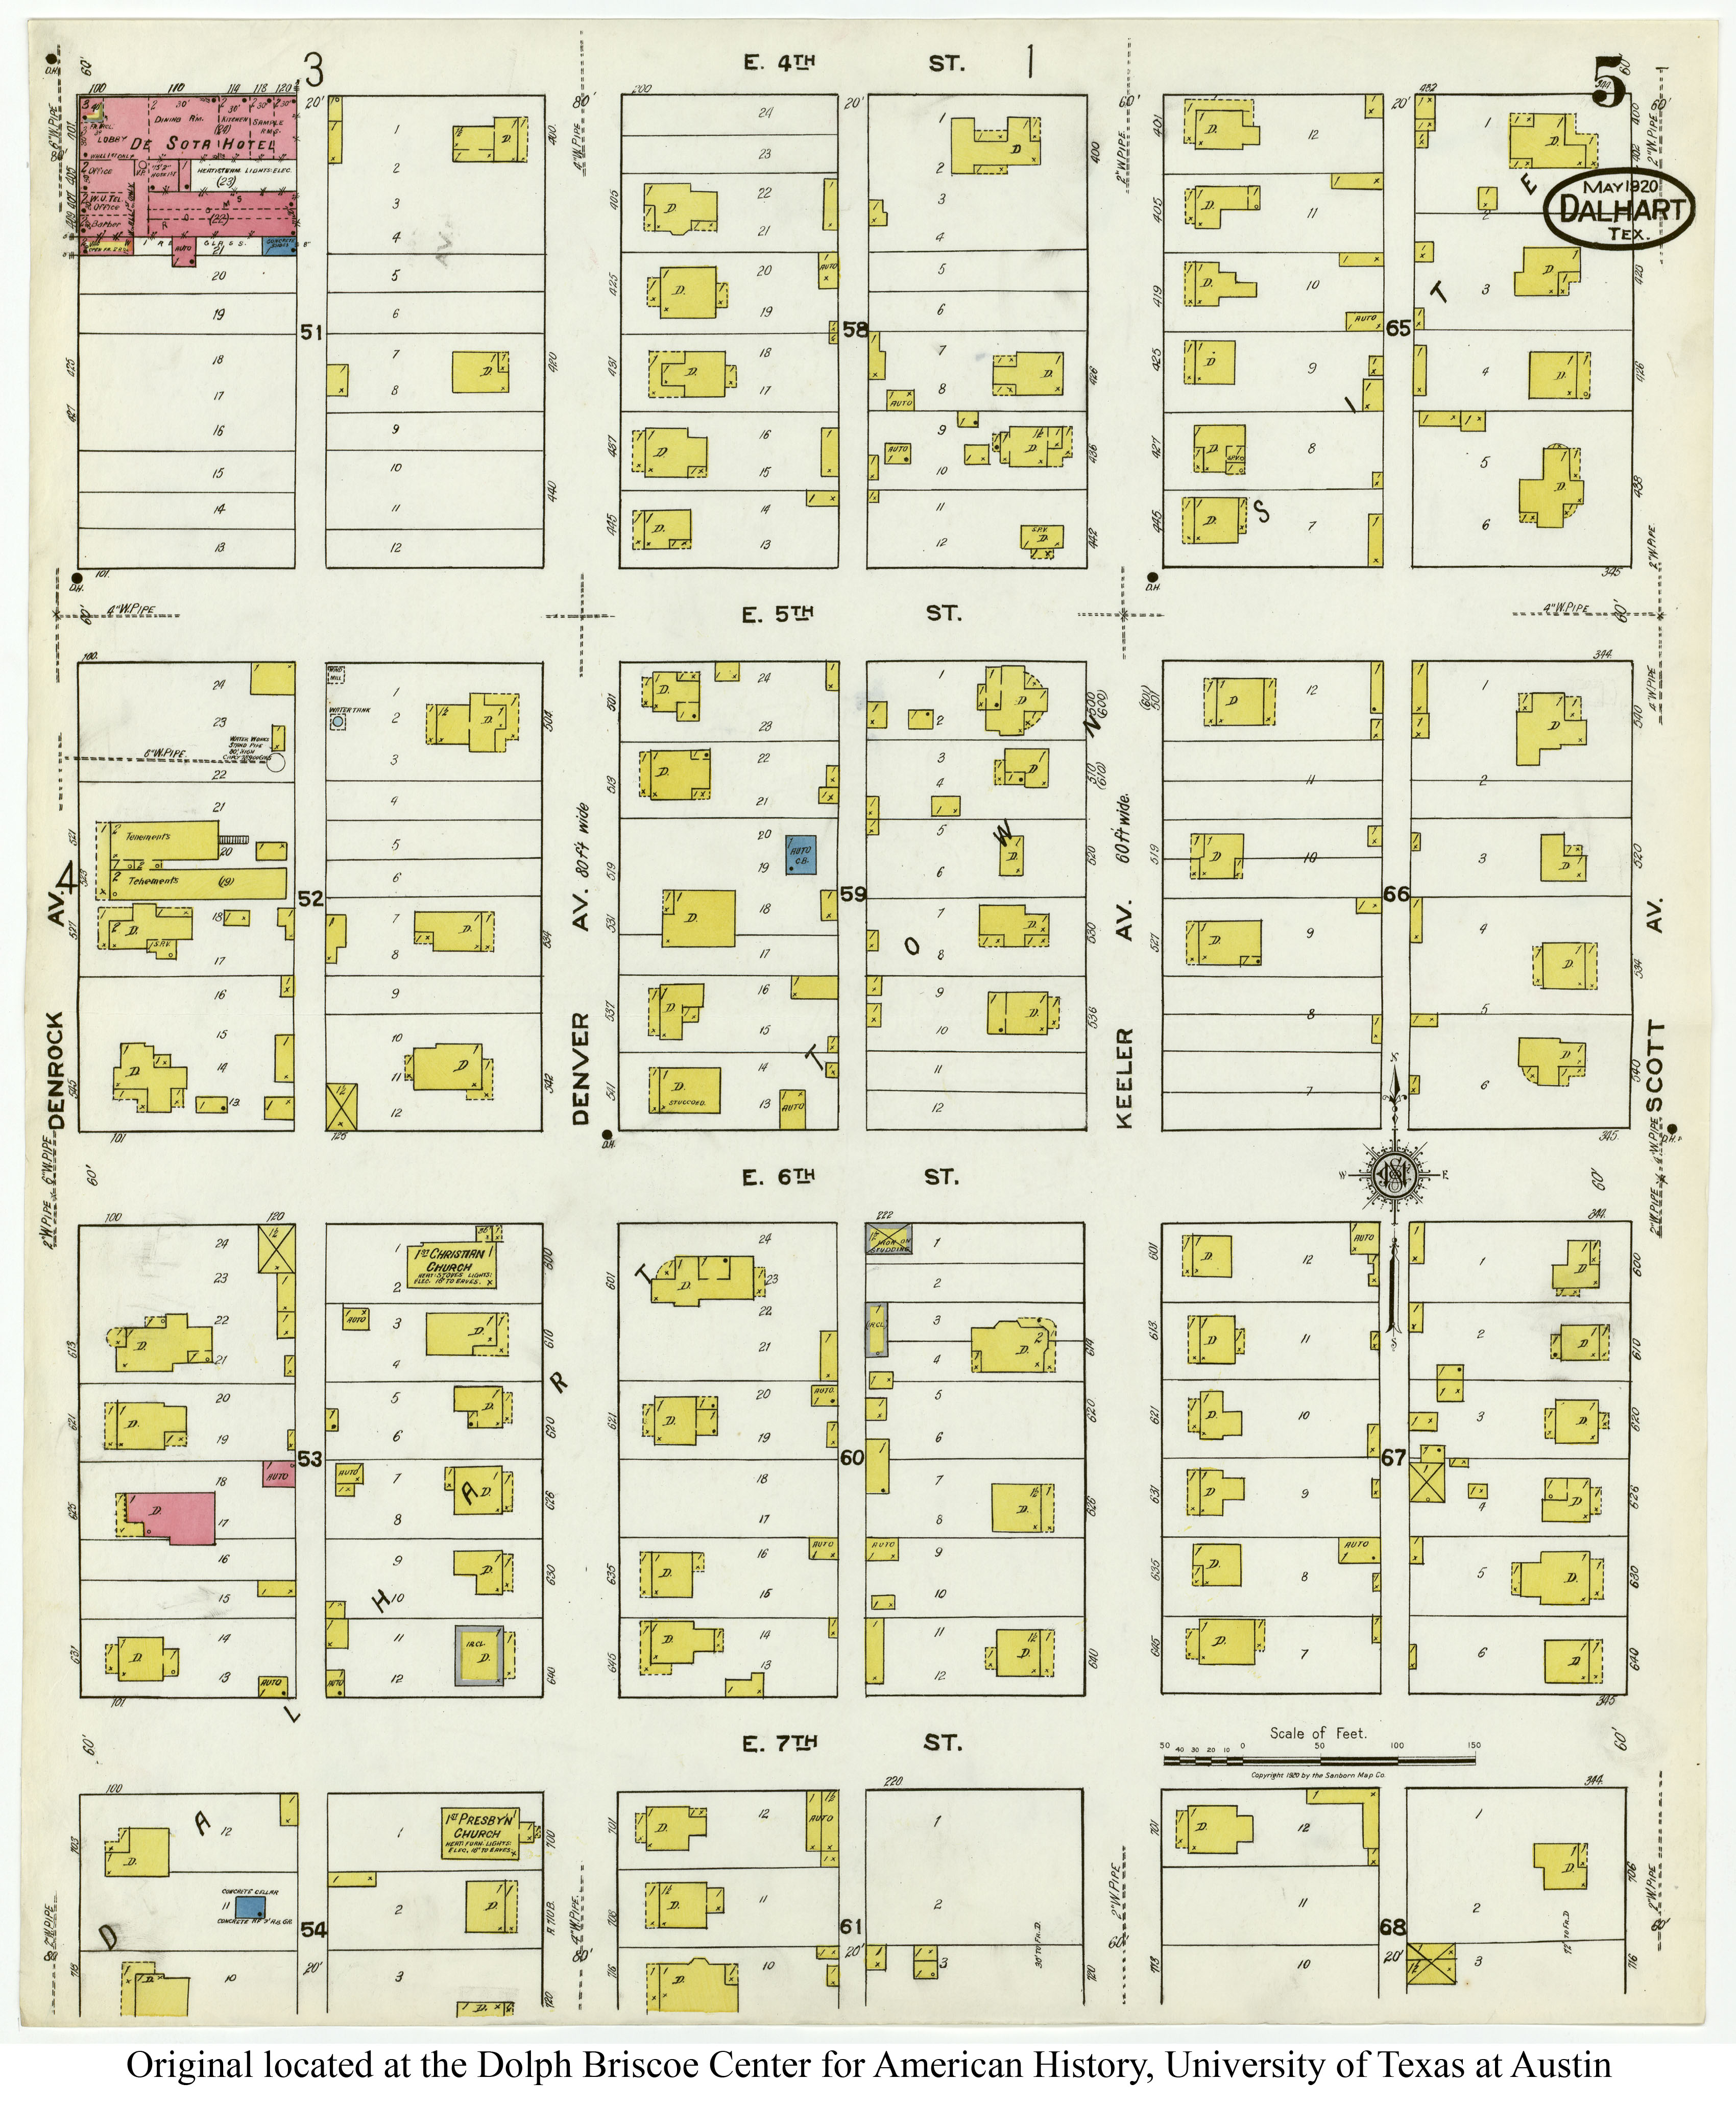 Sanborn Fire Map.Sanborn Maps Of Texas Perry Castaneda Map Collection Ut Library